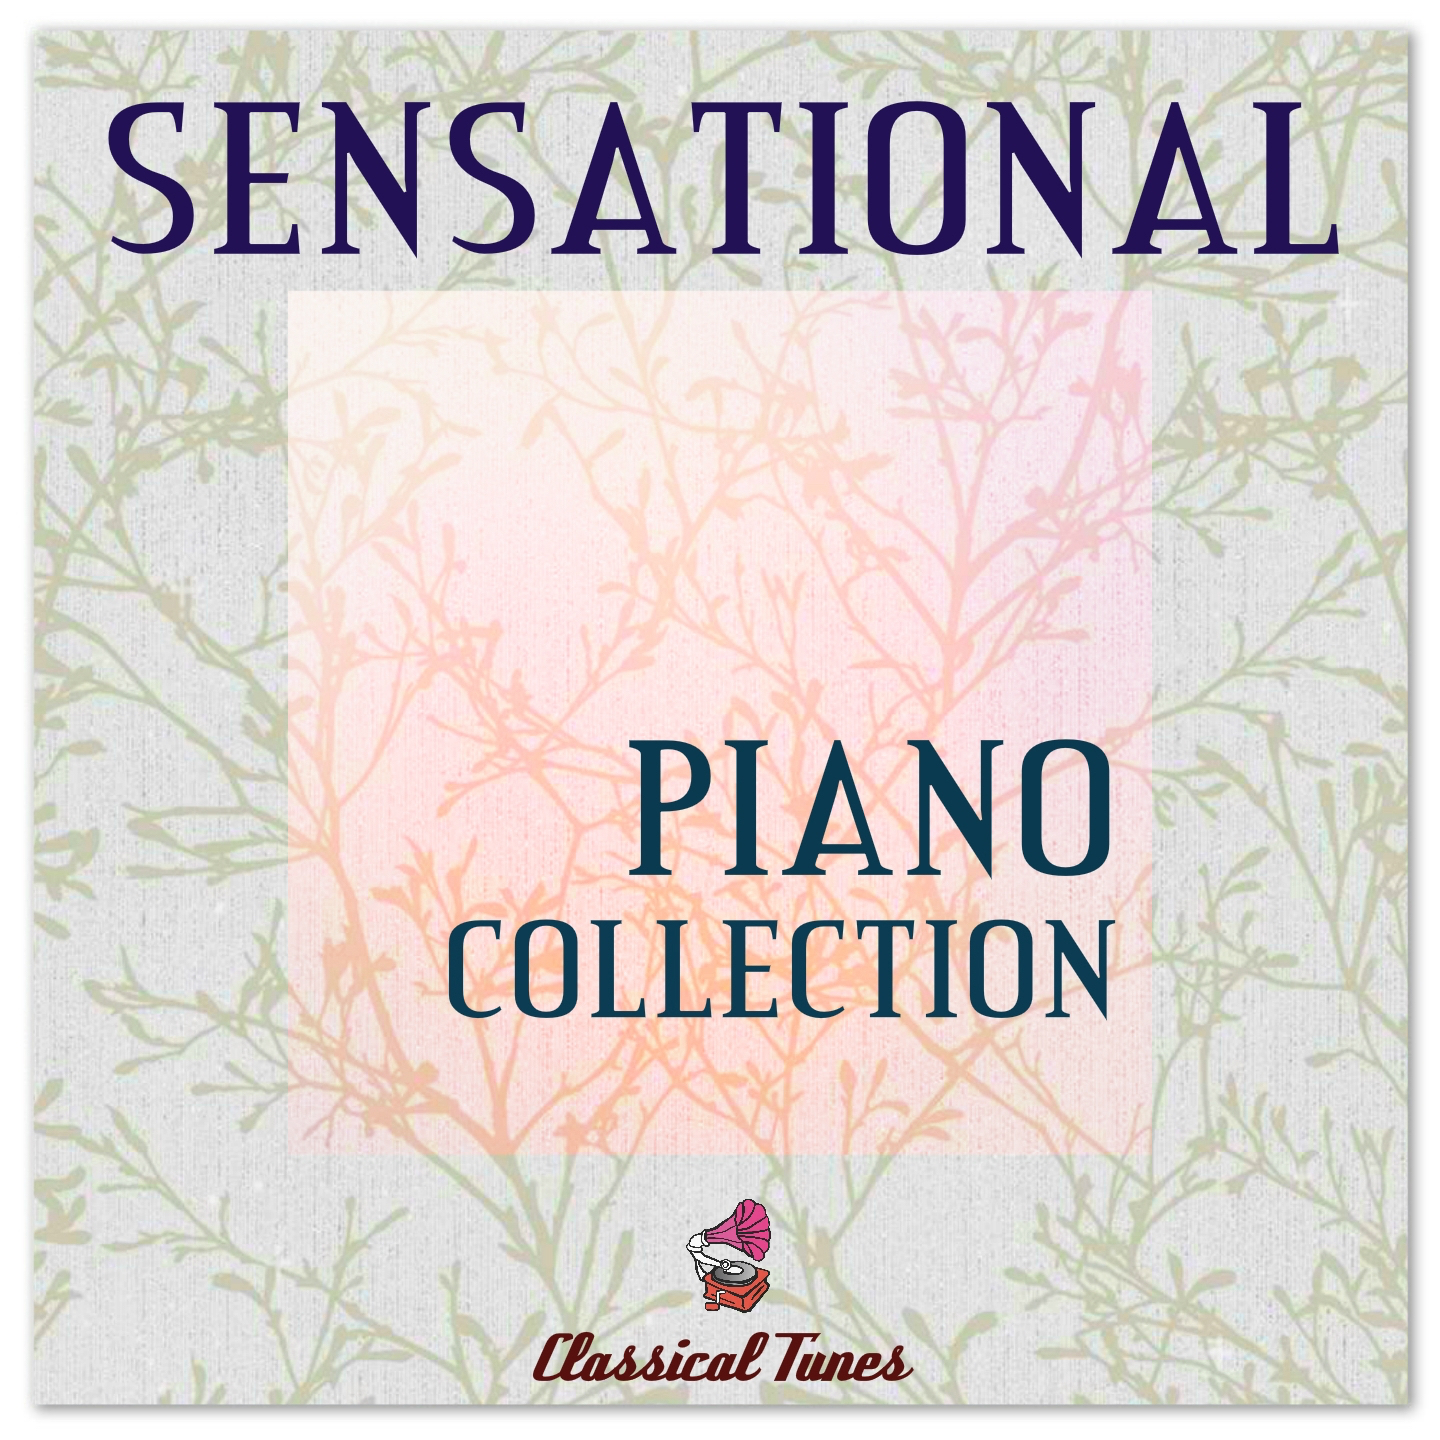 Sensational piano collection